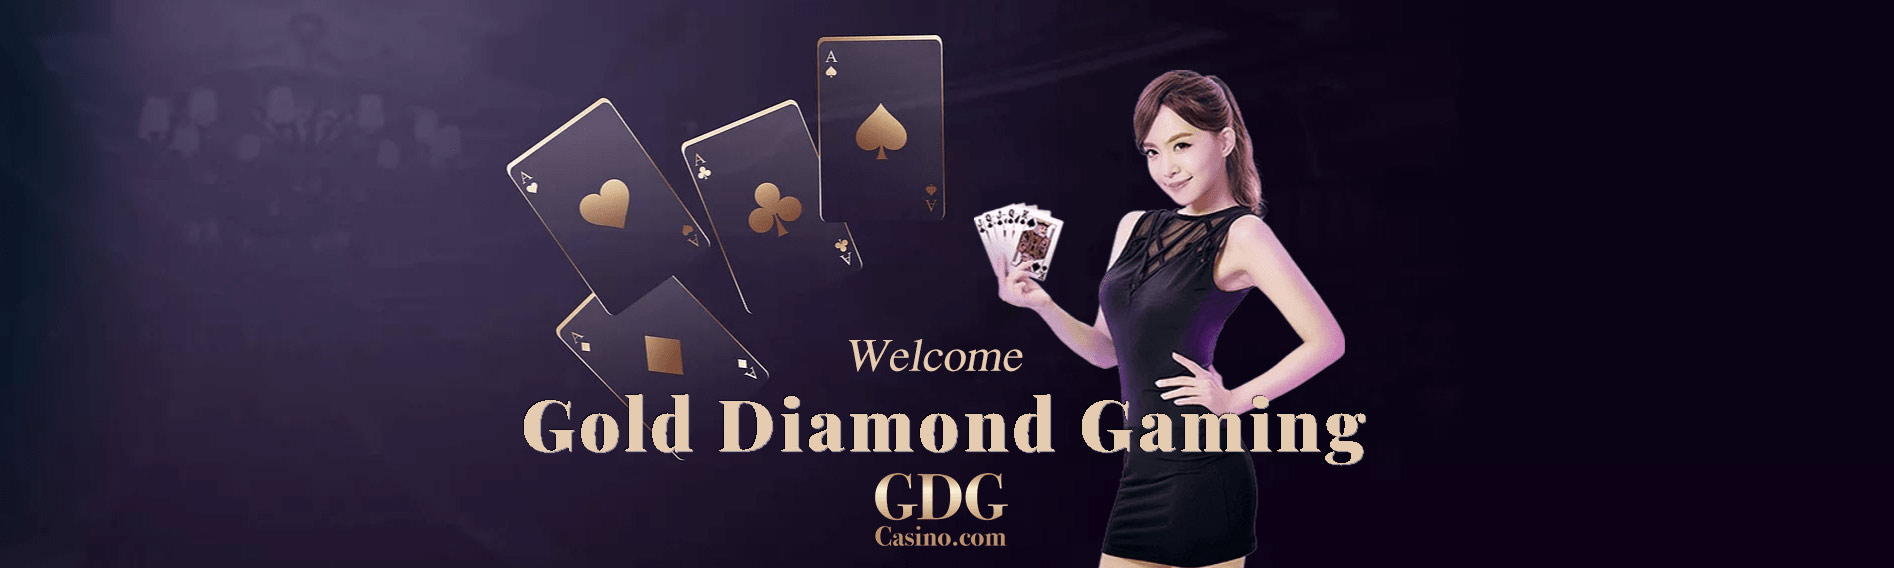 Welcome to Gold Diamond Gaming